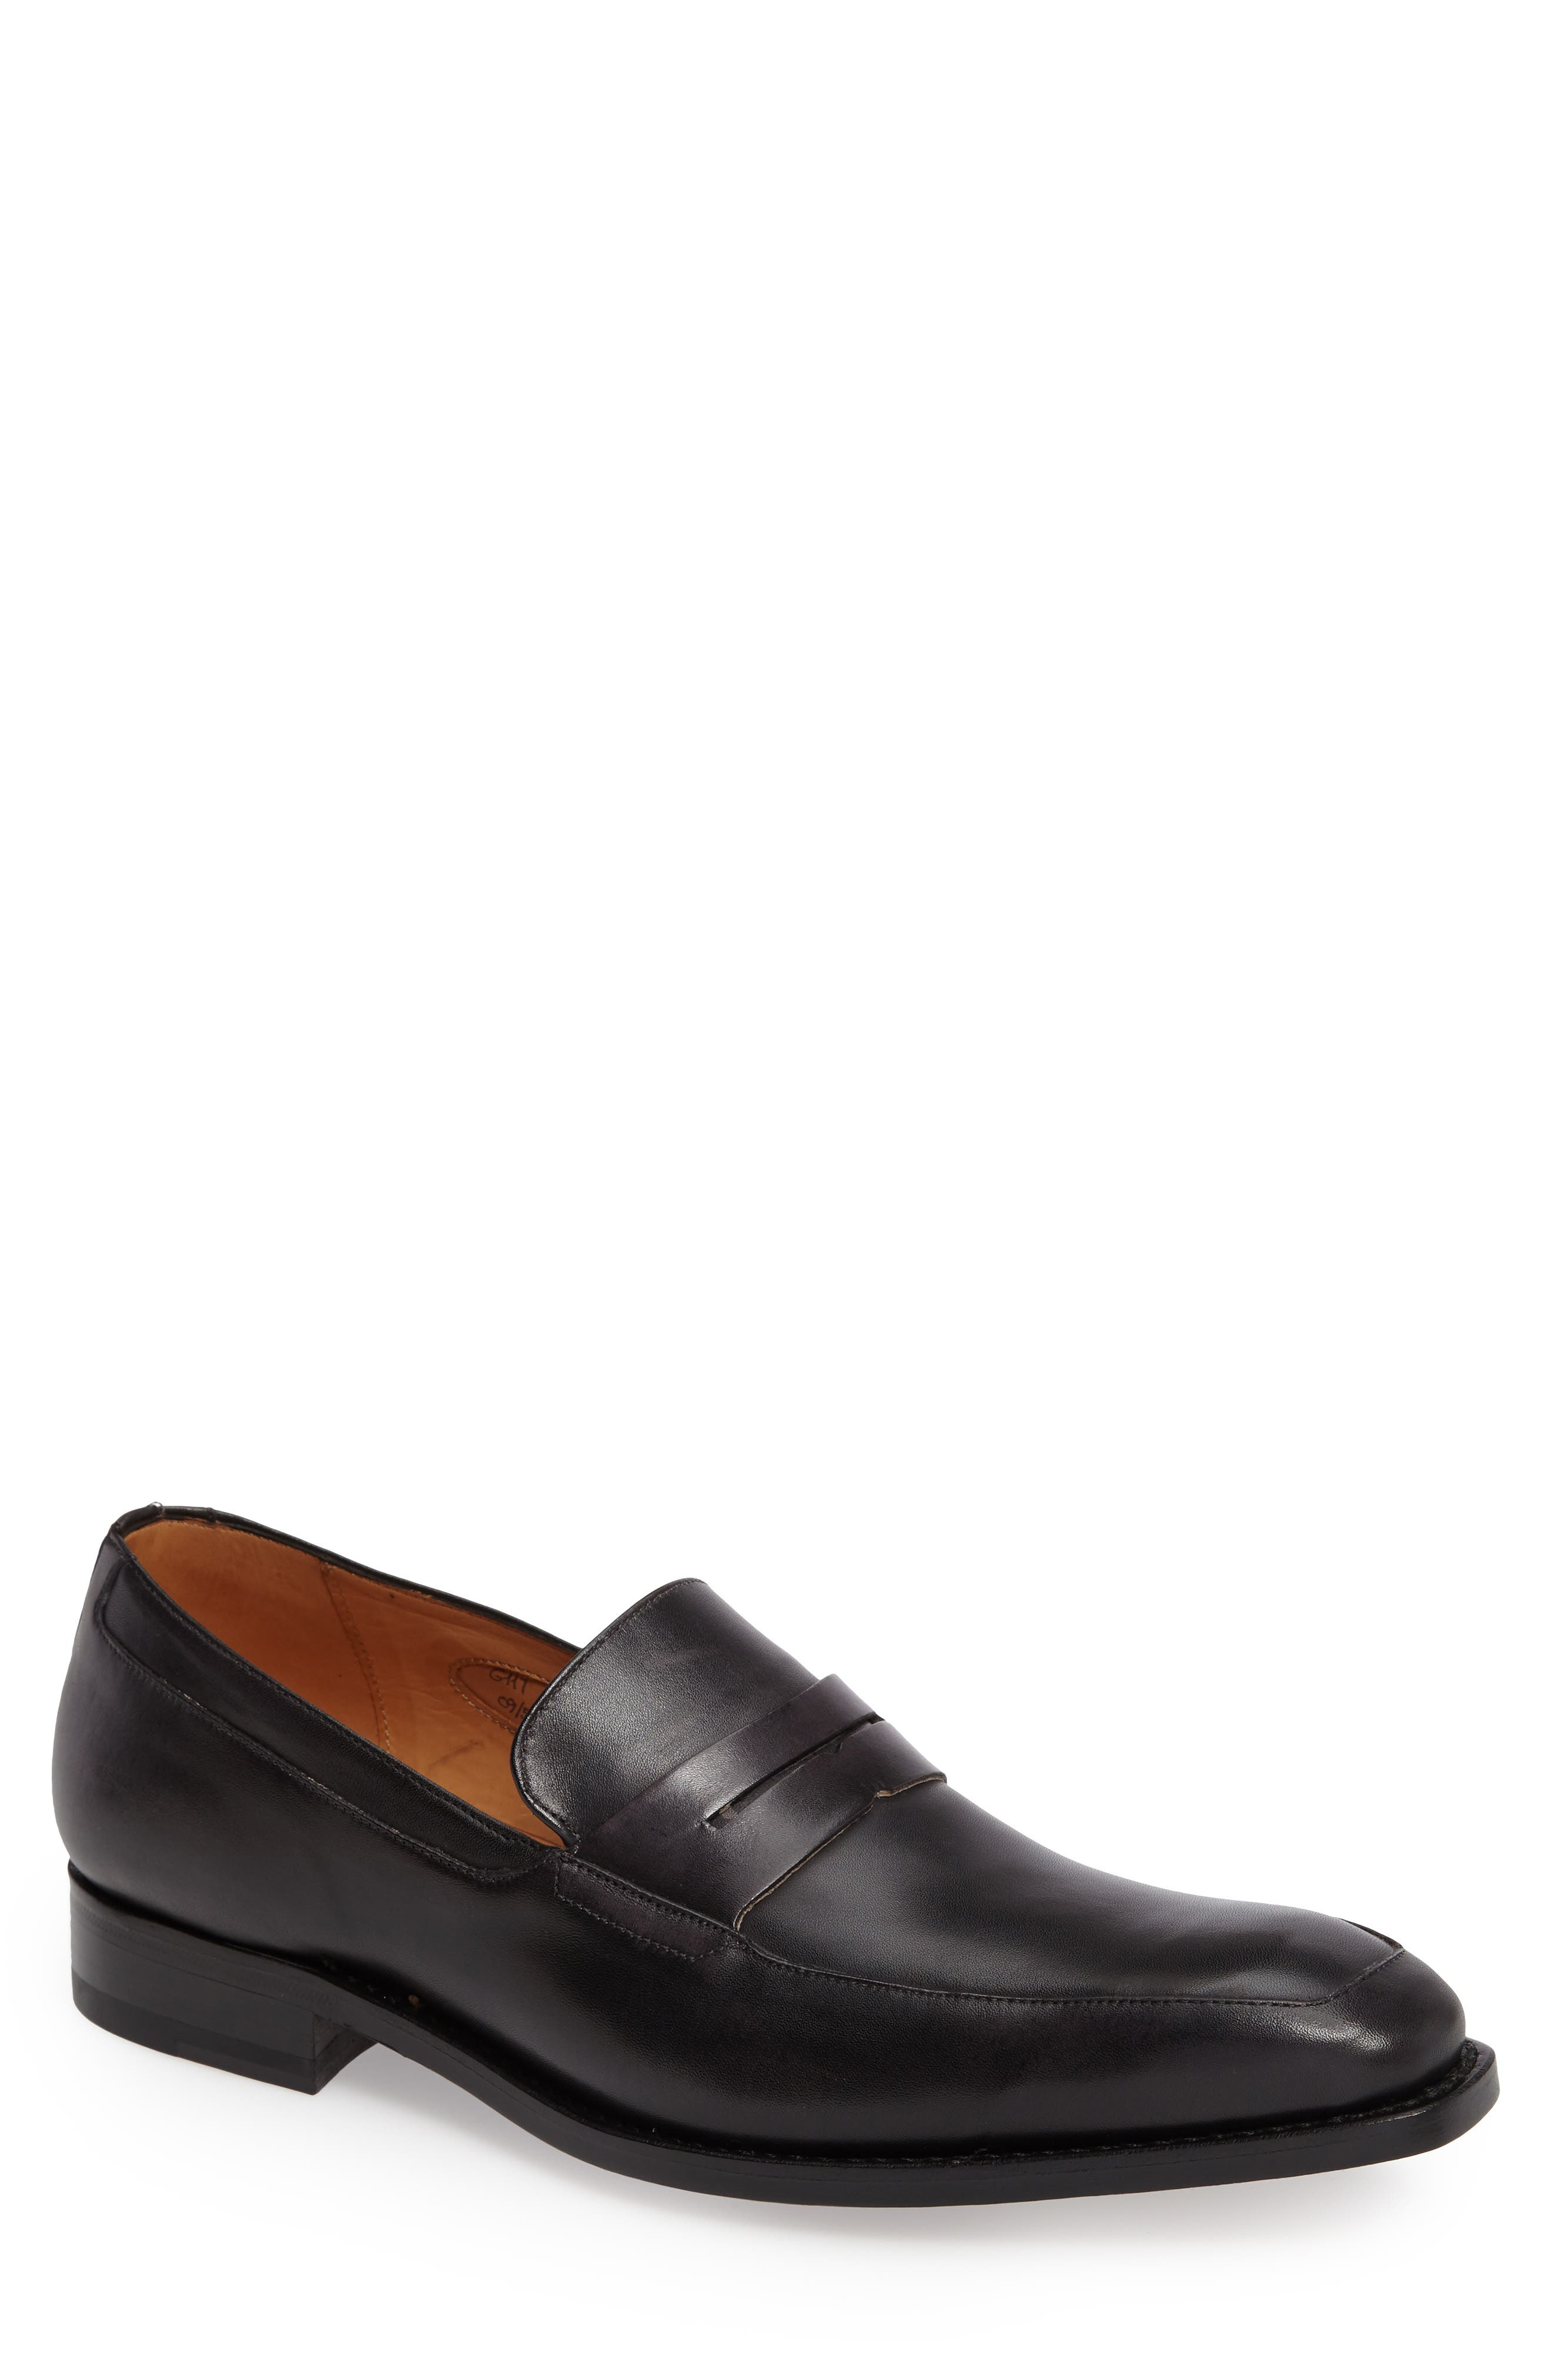 by Mezlan G117 Penny Loafer,                         Main,                         color, GRAPHITE